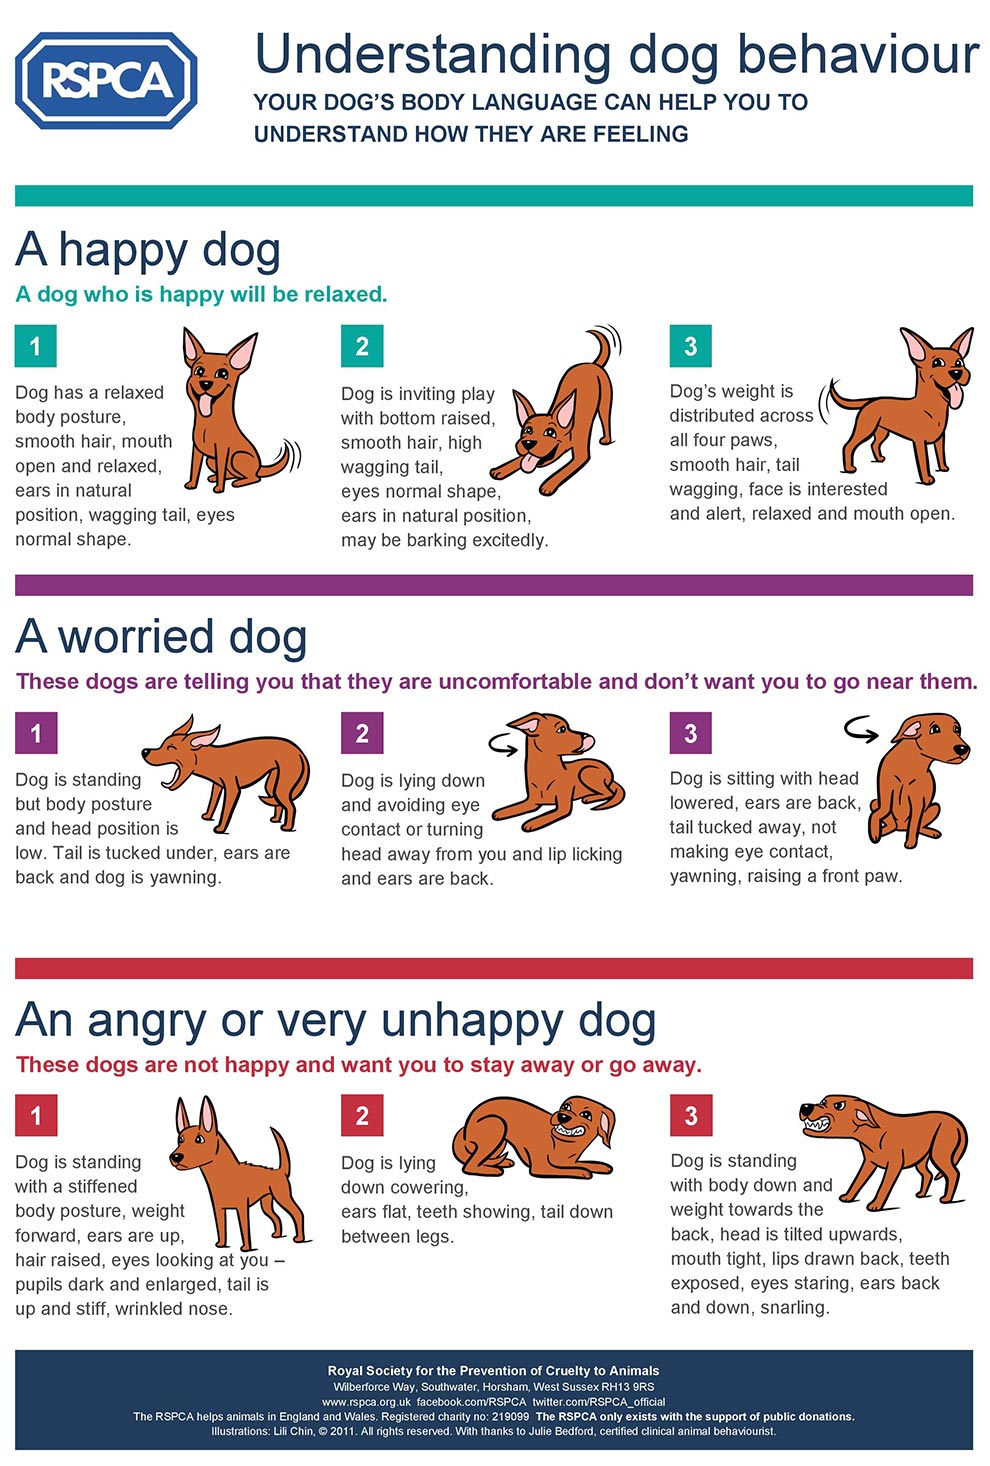 RSPCA Understanding Dog Behaviour